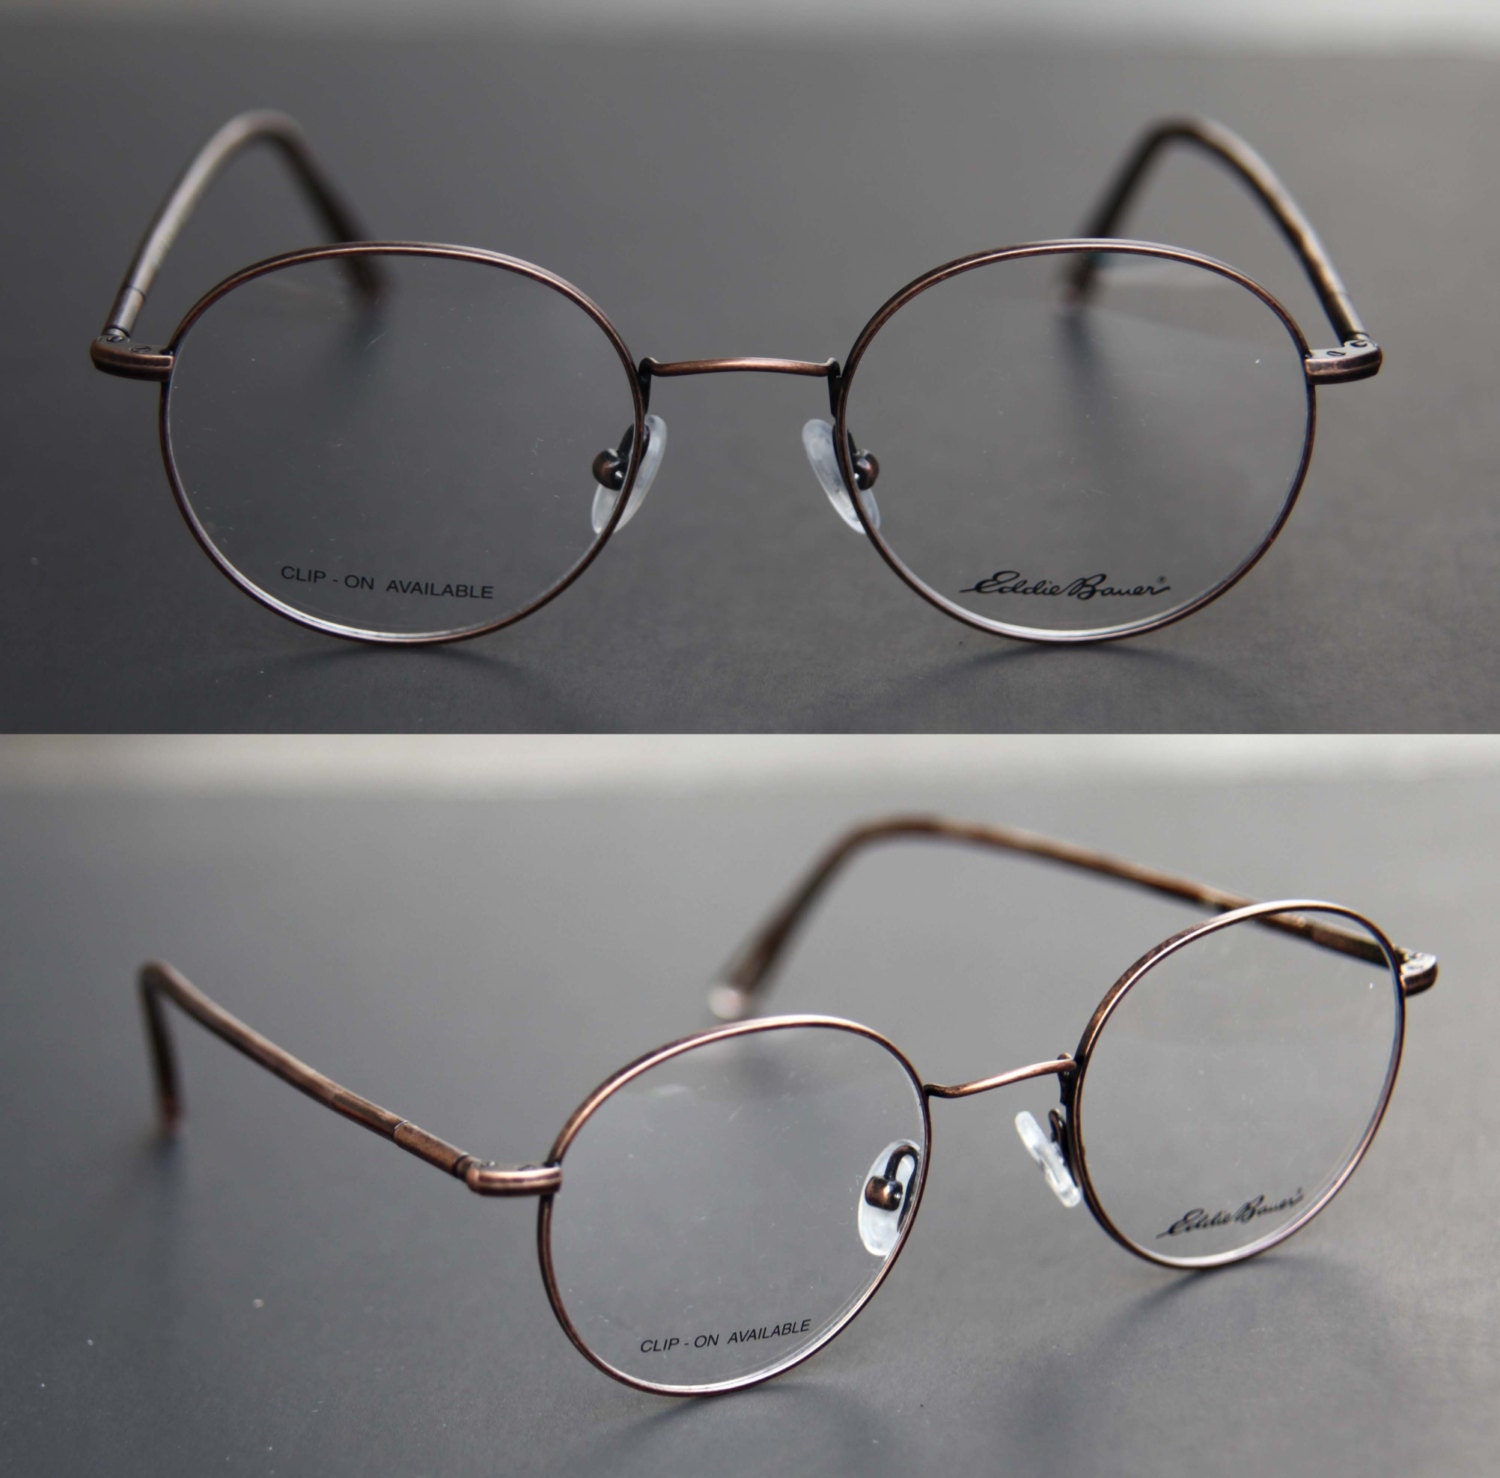 Wire Frame Glasses Vs Plastic : 80s NOS Copper Round Steampunk Wire Frame Eyeglasses by EDDIE